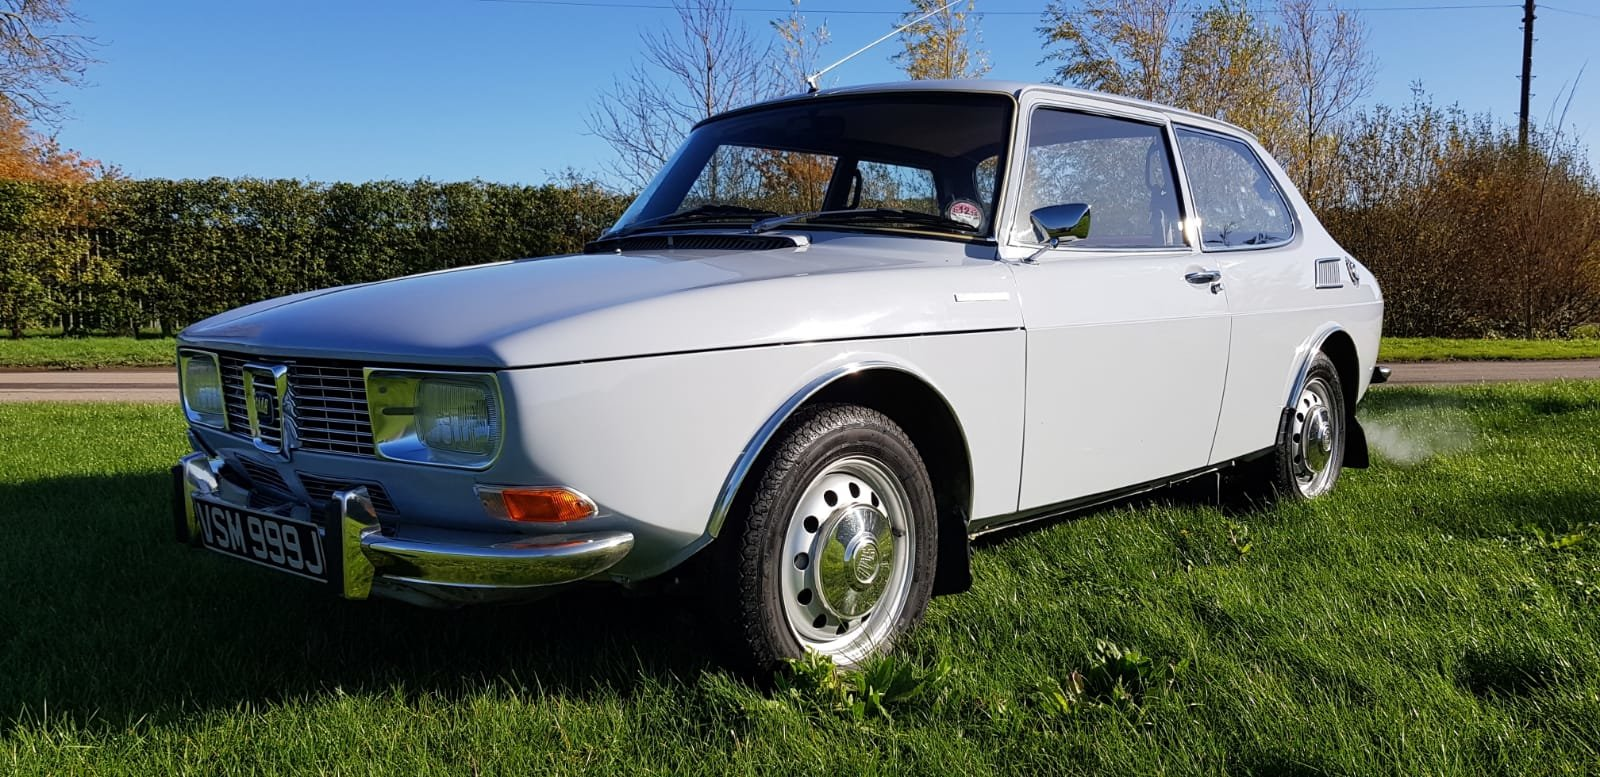 1971 Saab 99 1709cc 2-door, 79k miles, immaculate condition For Sale (picture 1 of 12)